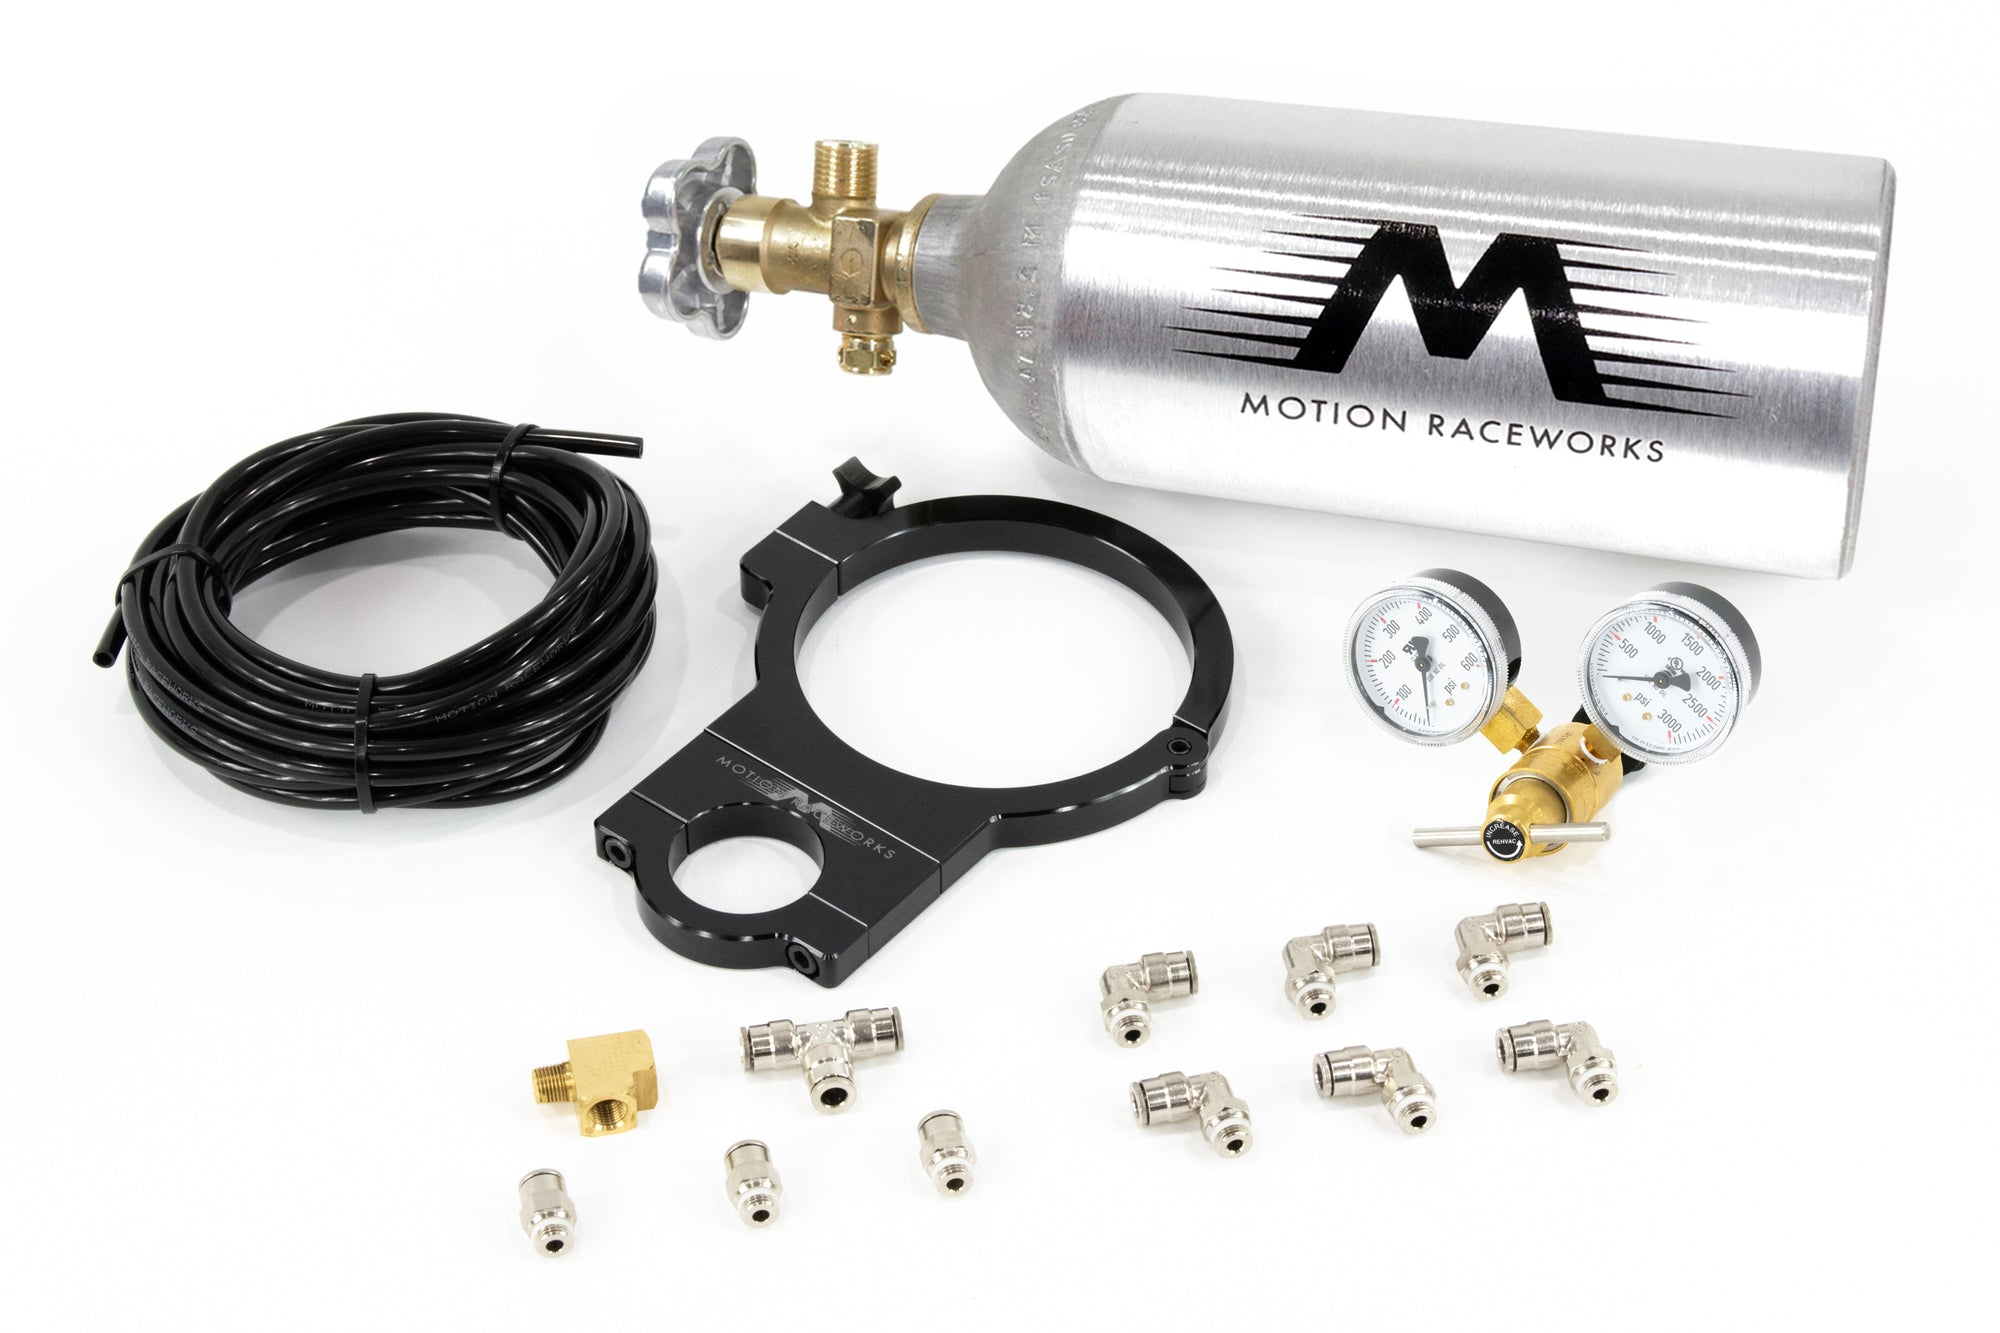 Motion Raceworks Single Wastegate Turbocharged CO2 Kit-Motion Raceworks-Motion Raceworks